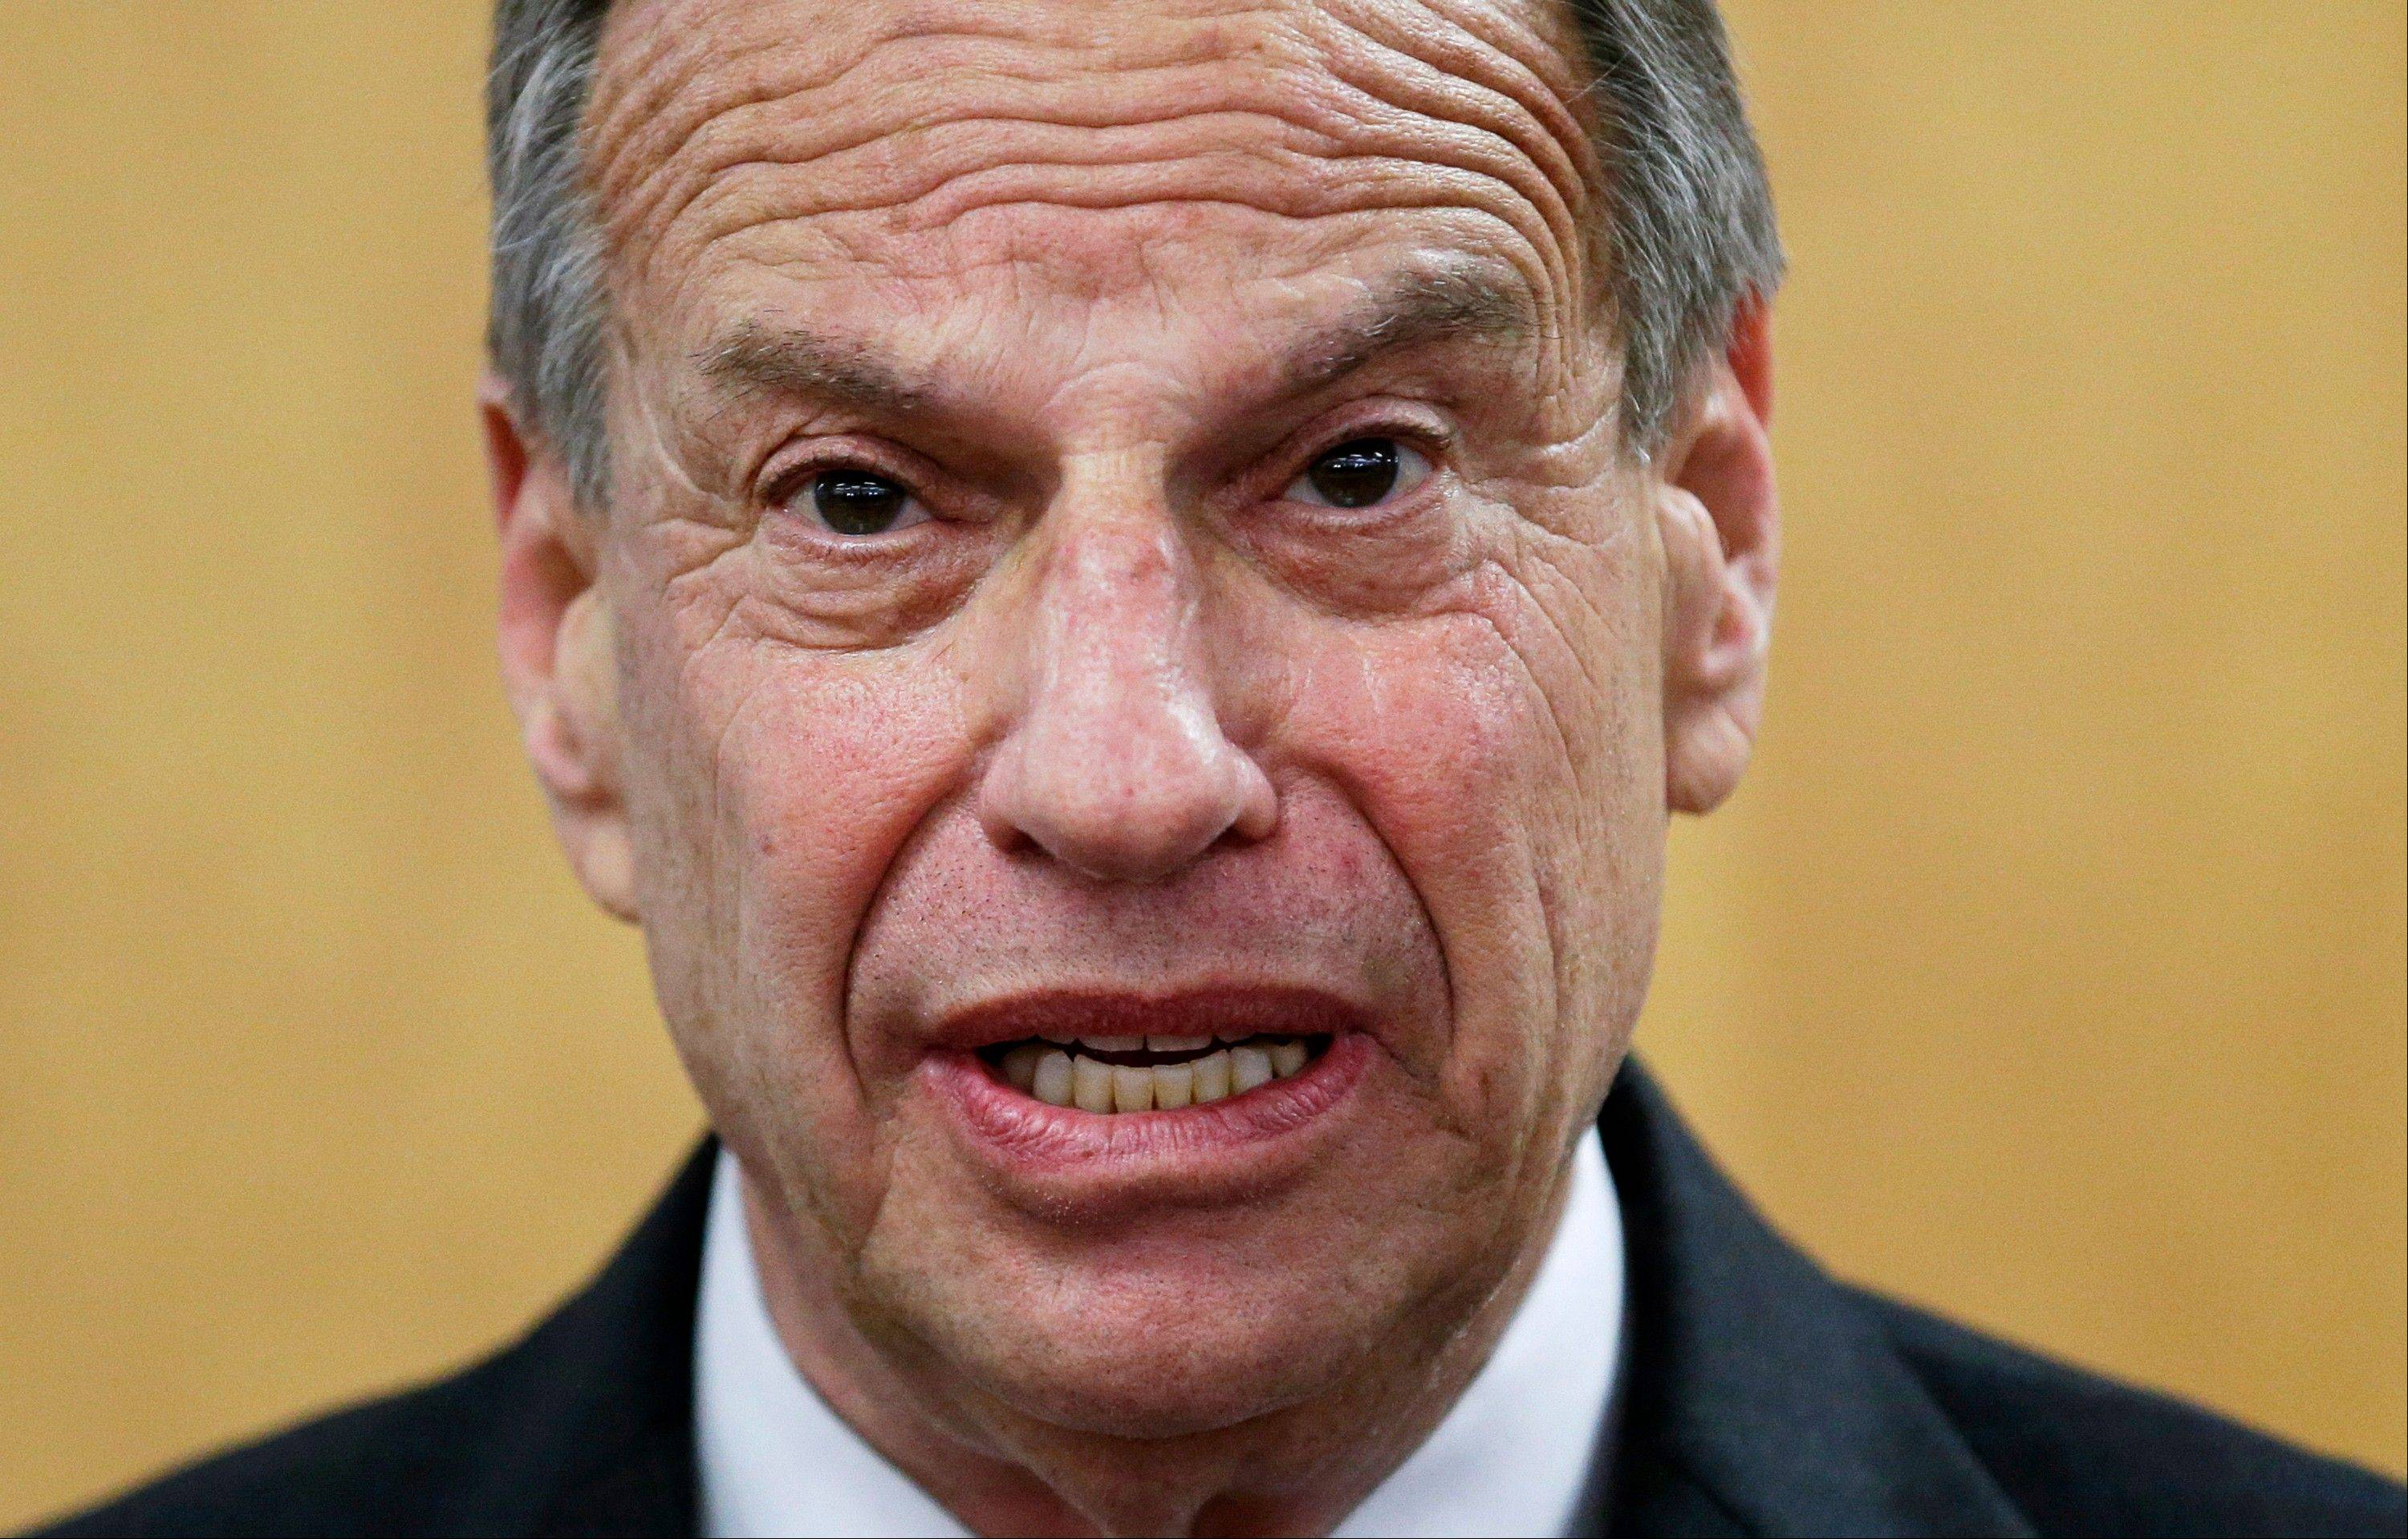 Mayor Bob Filner, besieged by sexual harassment allegations, sat down to the negotiating table with a key bargaining chip: His refusal to resign. Now that a deal aimed at ending one of San Diego�s darkest periods of political turmoil has been reached, it�s up to the City Council to decide whether to cash in the chip.